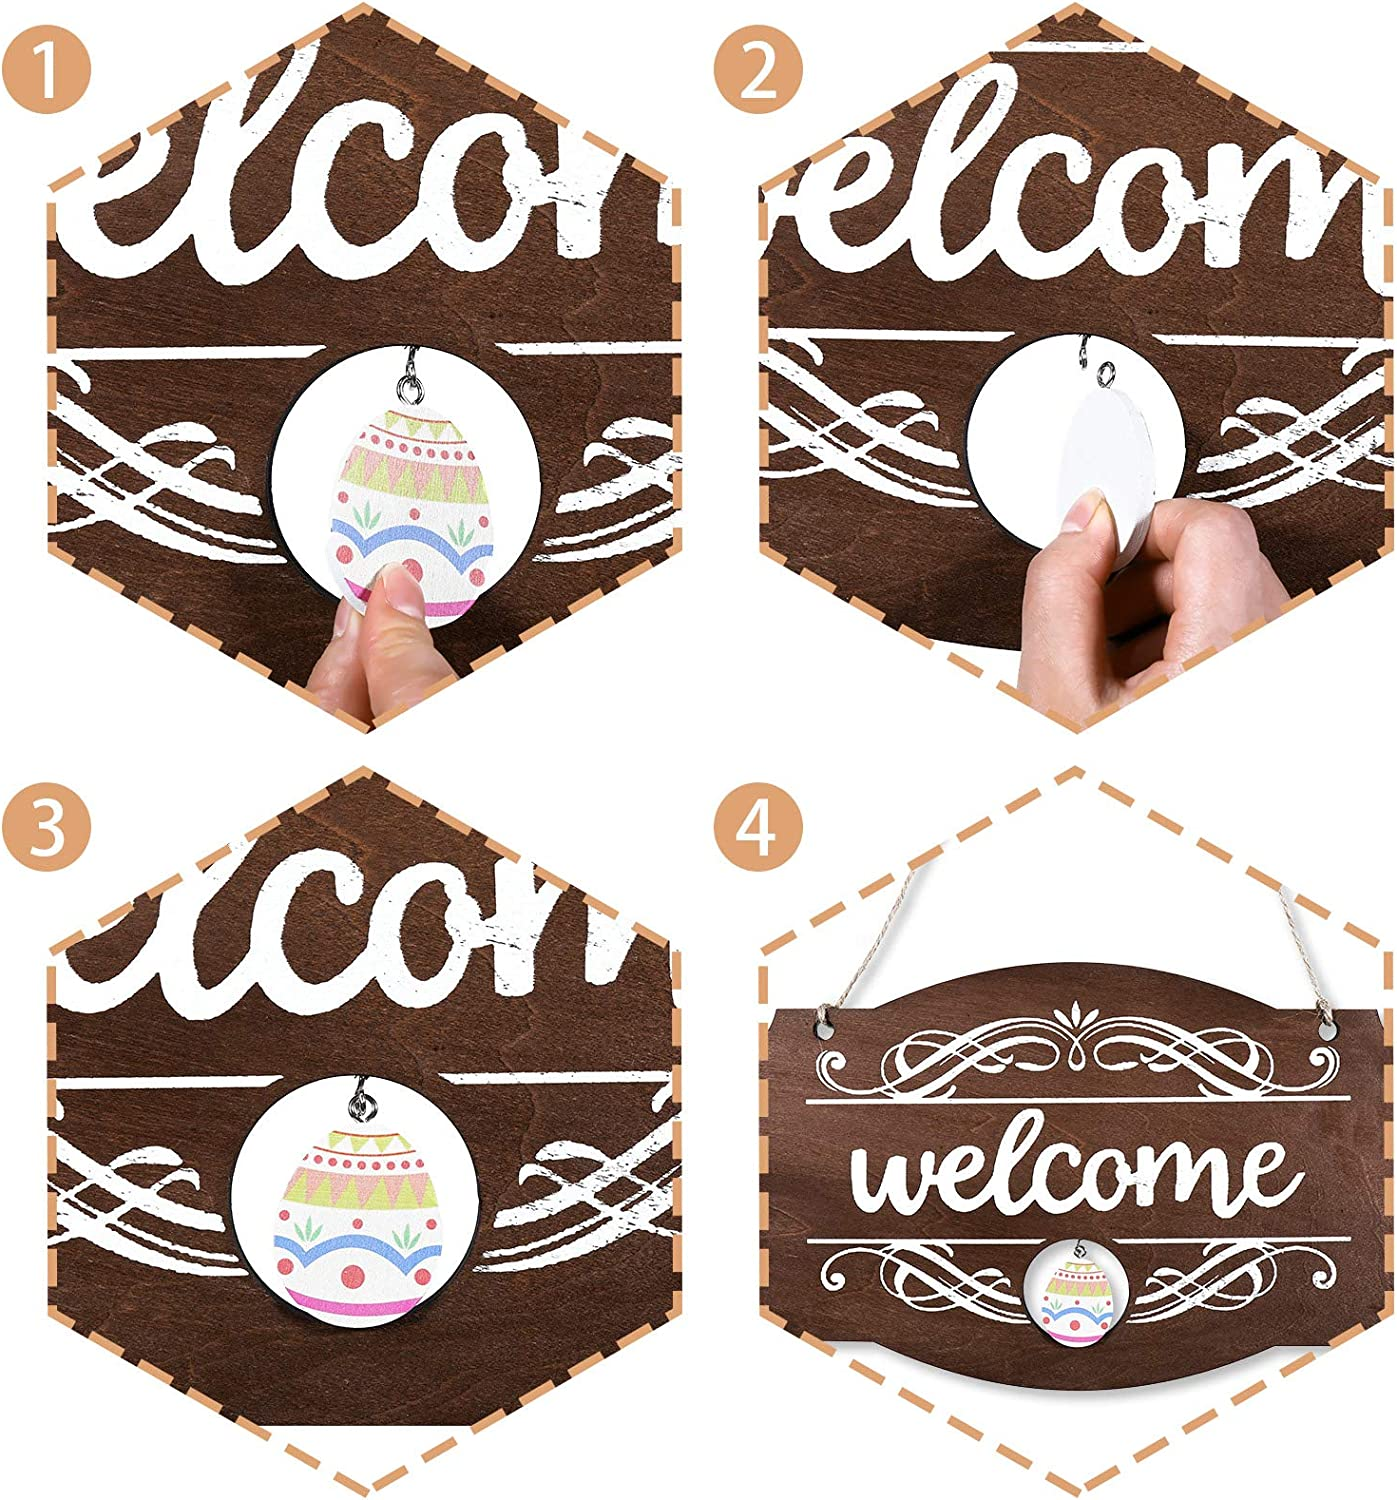 Interchangeable Seasonal Welcome Sign Front Door Decor Rustic Wood Welcome Sign Wall Hanging Porch Decoration for Holiday Halloween Fall Christmas Easter Valentines Thanksgiving Decor 14 x 9 Inch